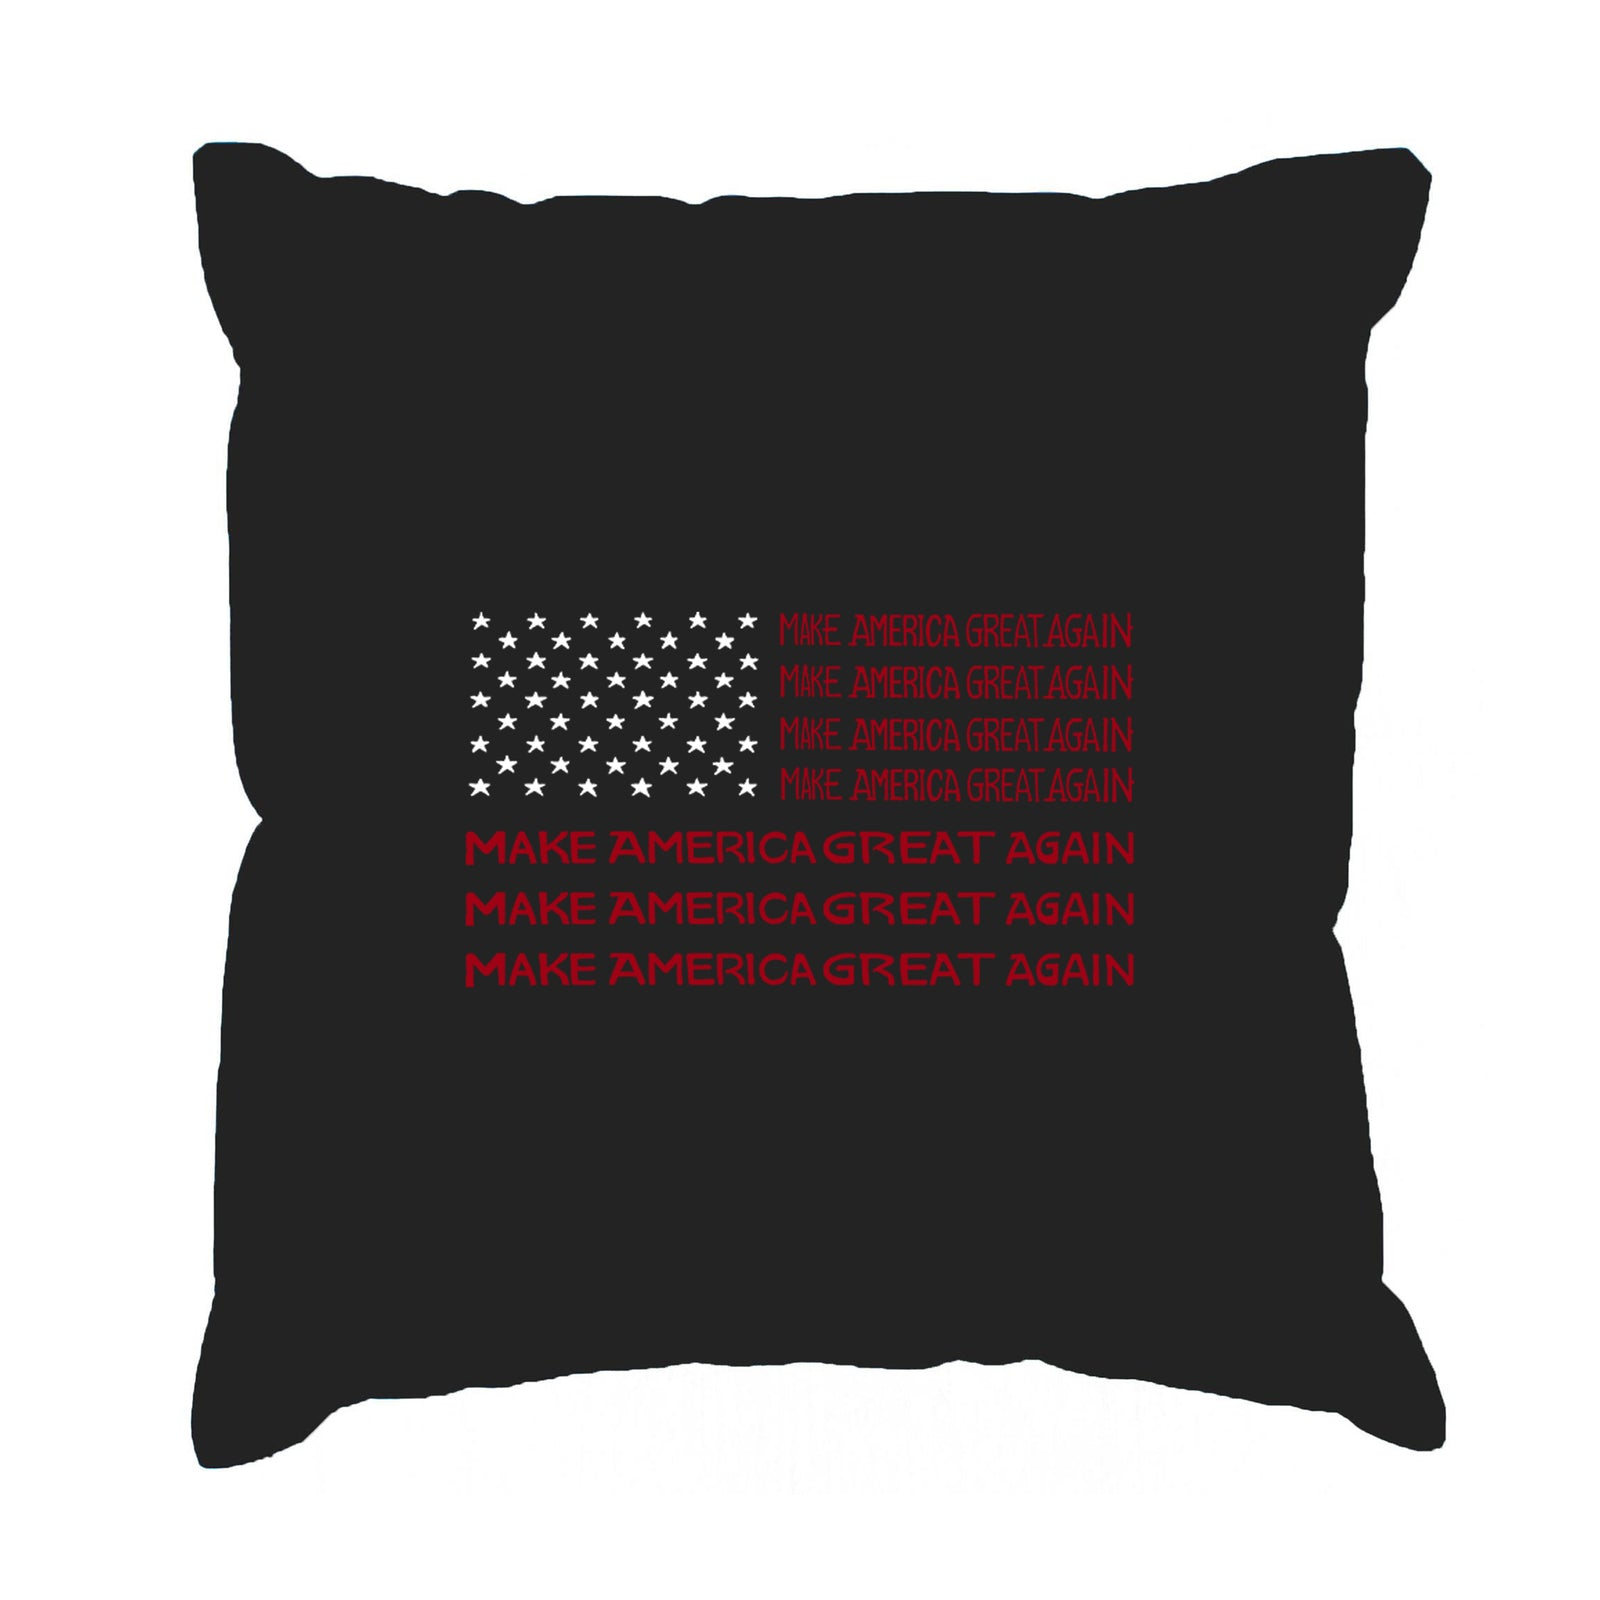 Throw Pillow Cover - Word Art - Maga Flag